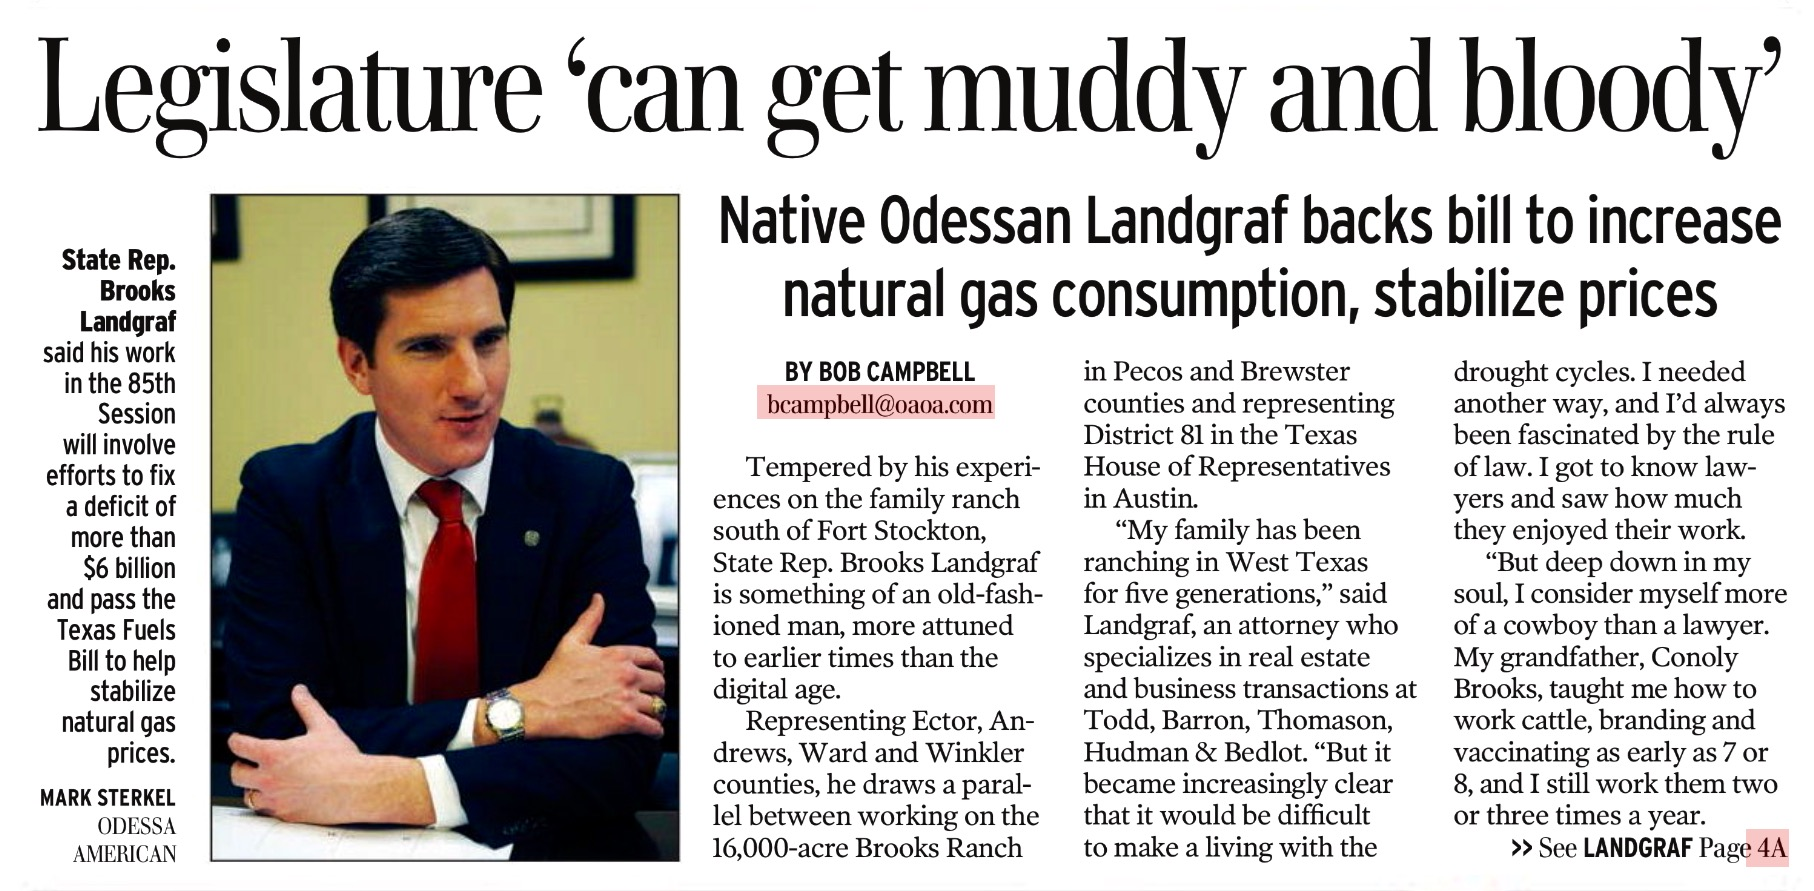 Landgraf_says_legislature_can_get_muddy_and_bloddy.jpg